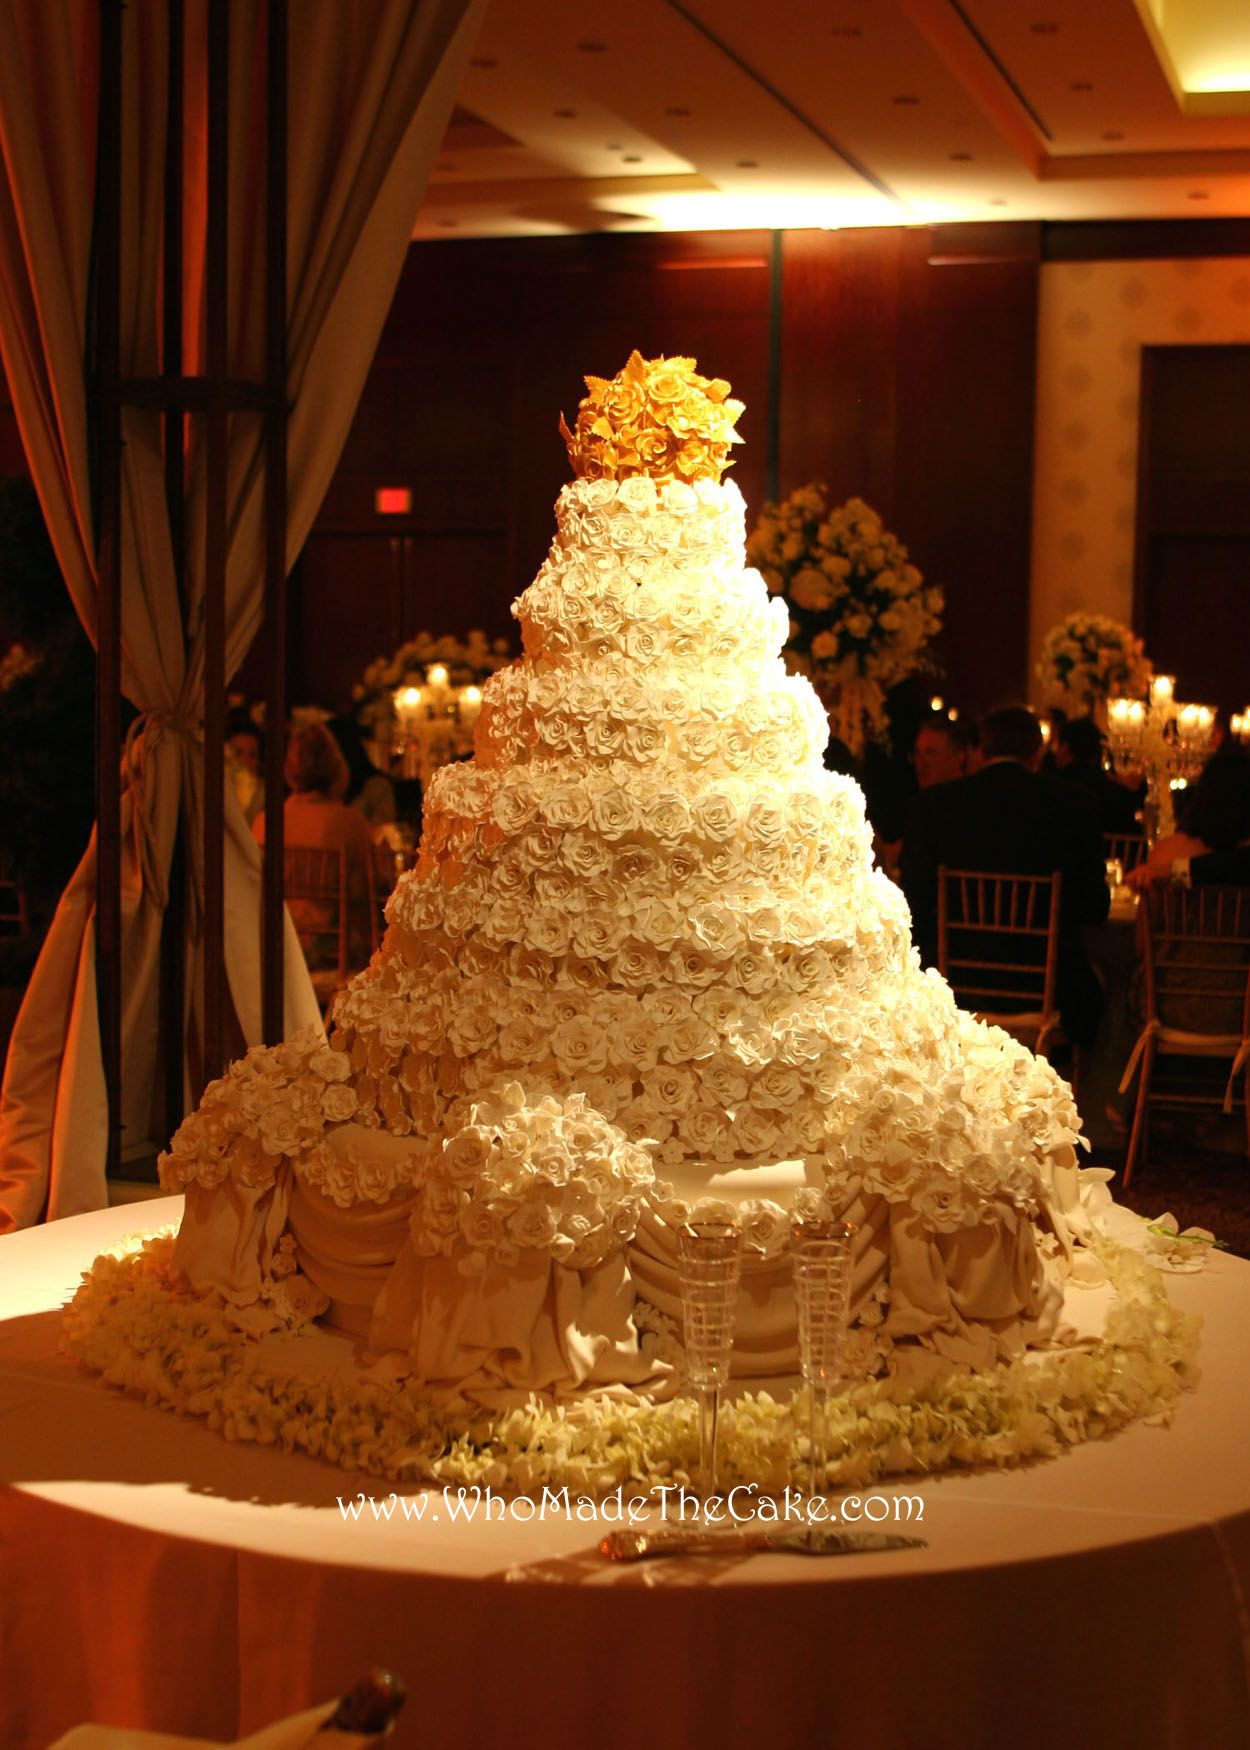 This Beautiful Cake Is Covered In Over 2500 Sugar Paste Roses Eared People Magazine The Bride Was Inspired By Donald Trump S Wedding